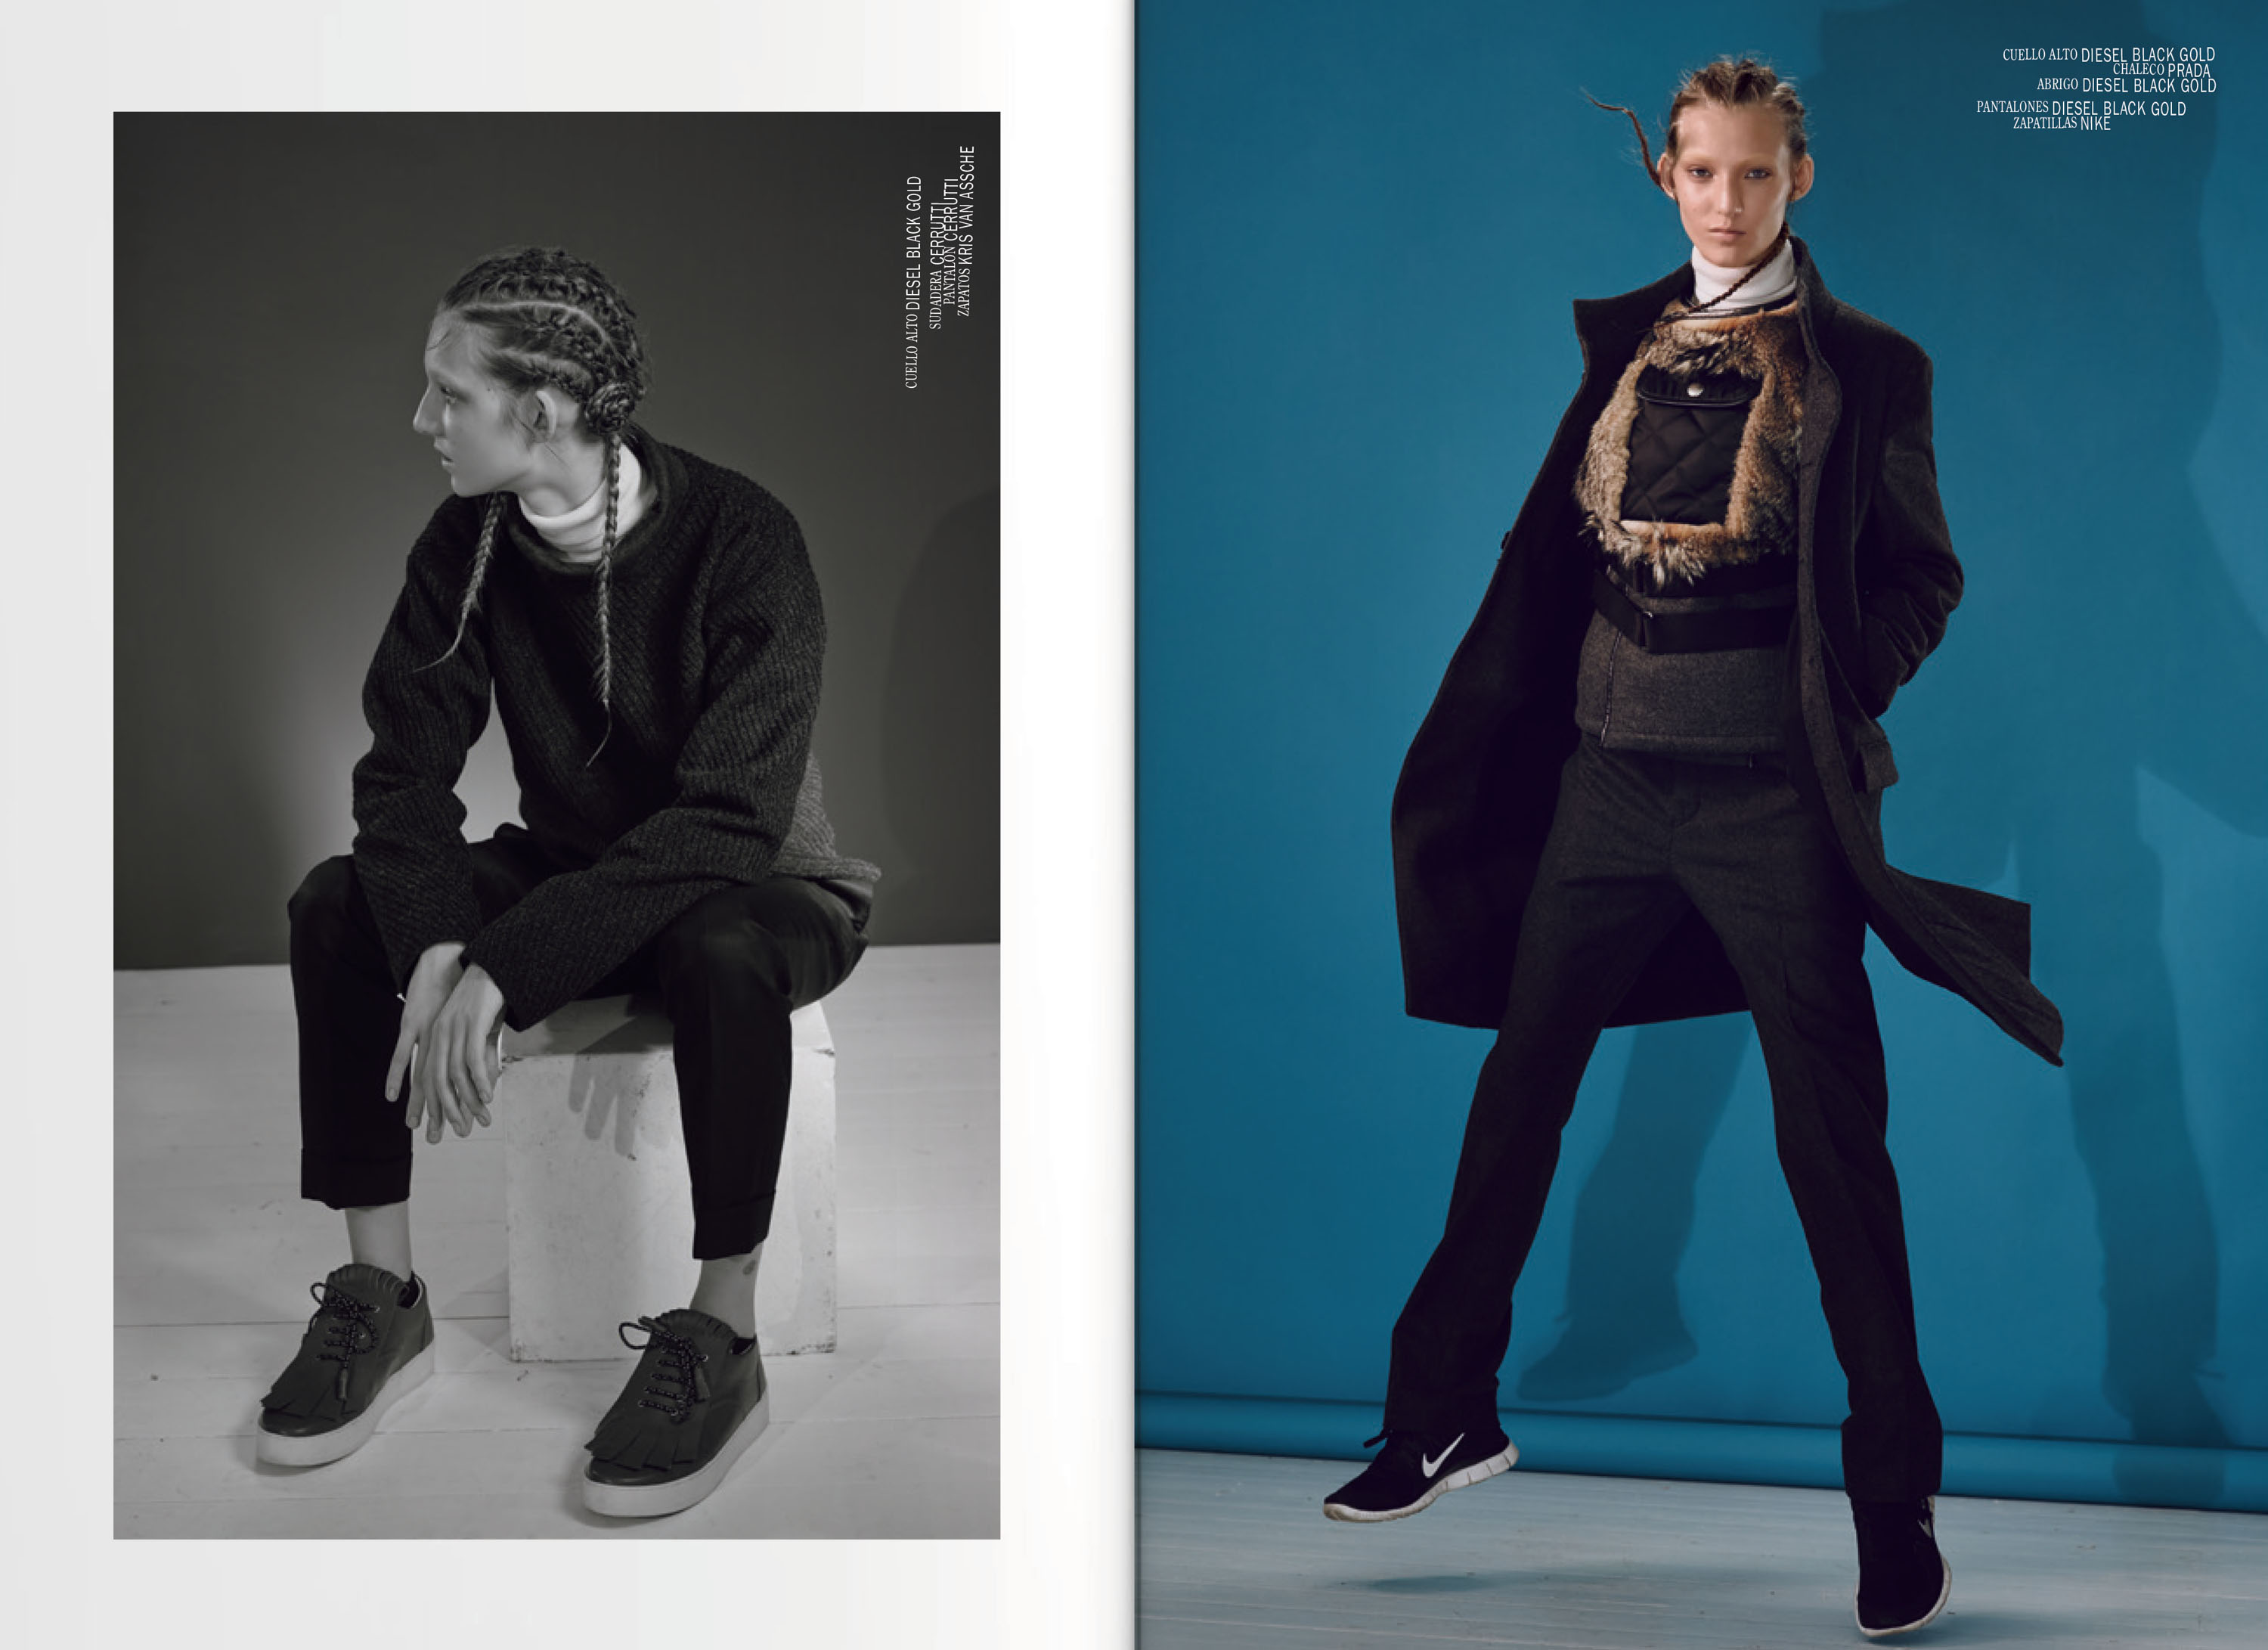 Detlef Schneider Photography, Styling Ingo Nahrwold, VEIN Magazine, Fashion Editorial